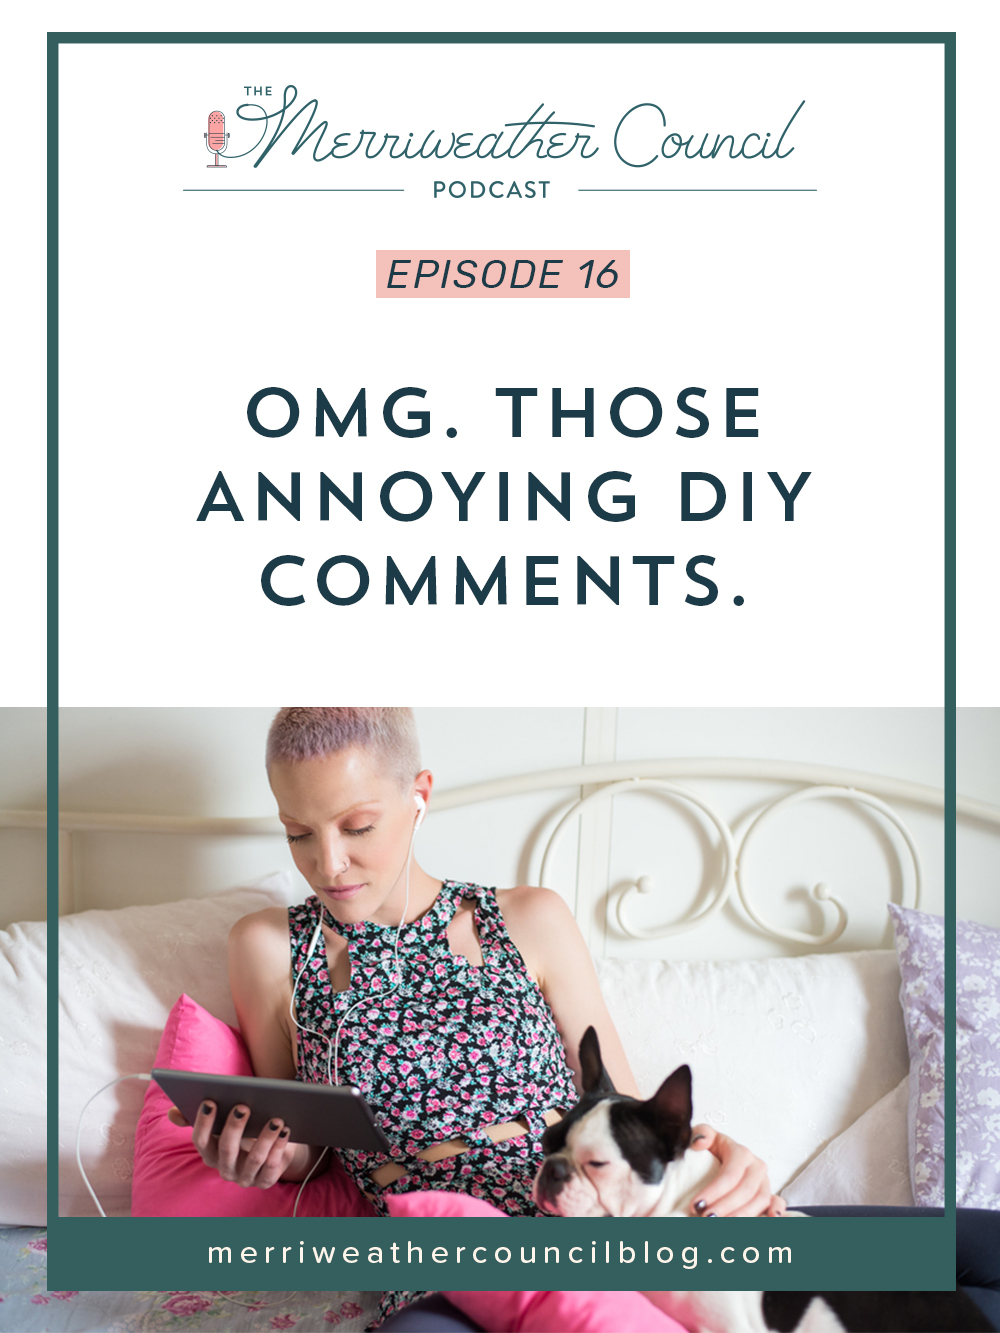 Episode 016: OMG. Those Annoying DIY Comments | the merriweather council podcast